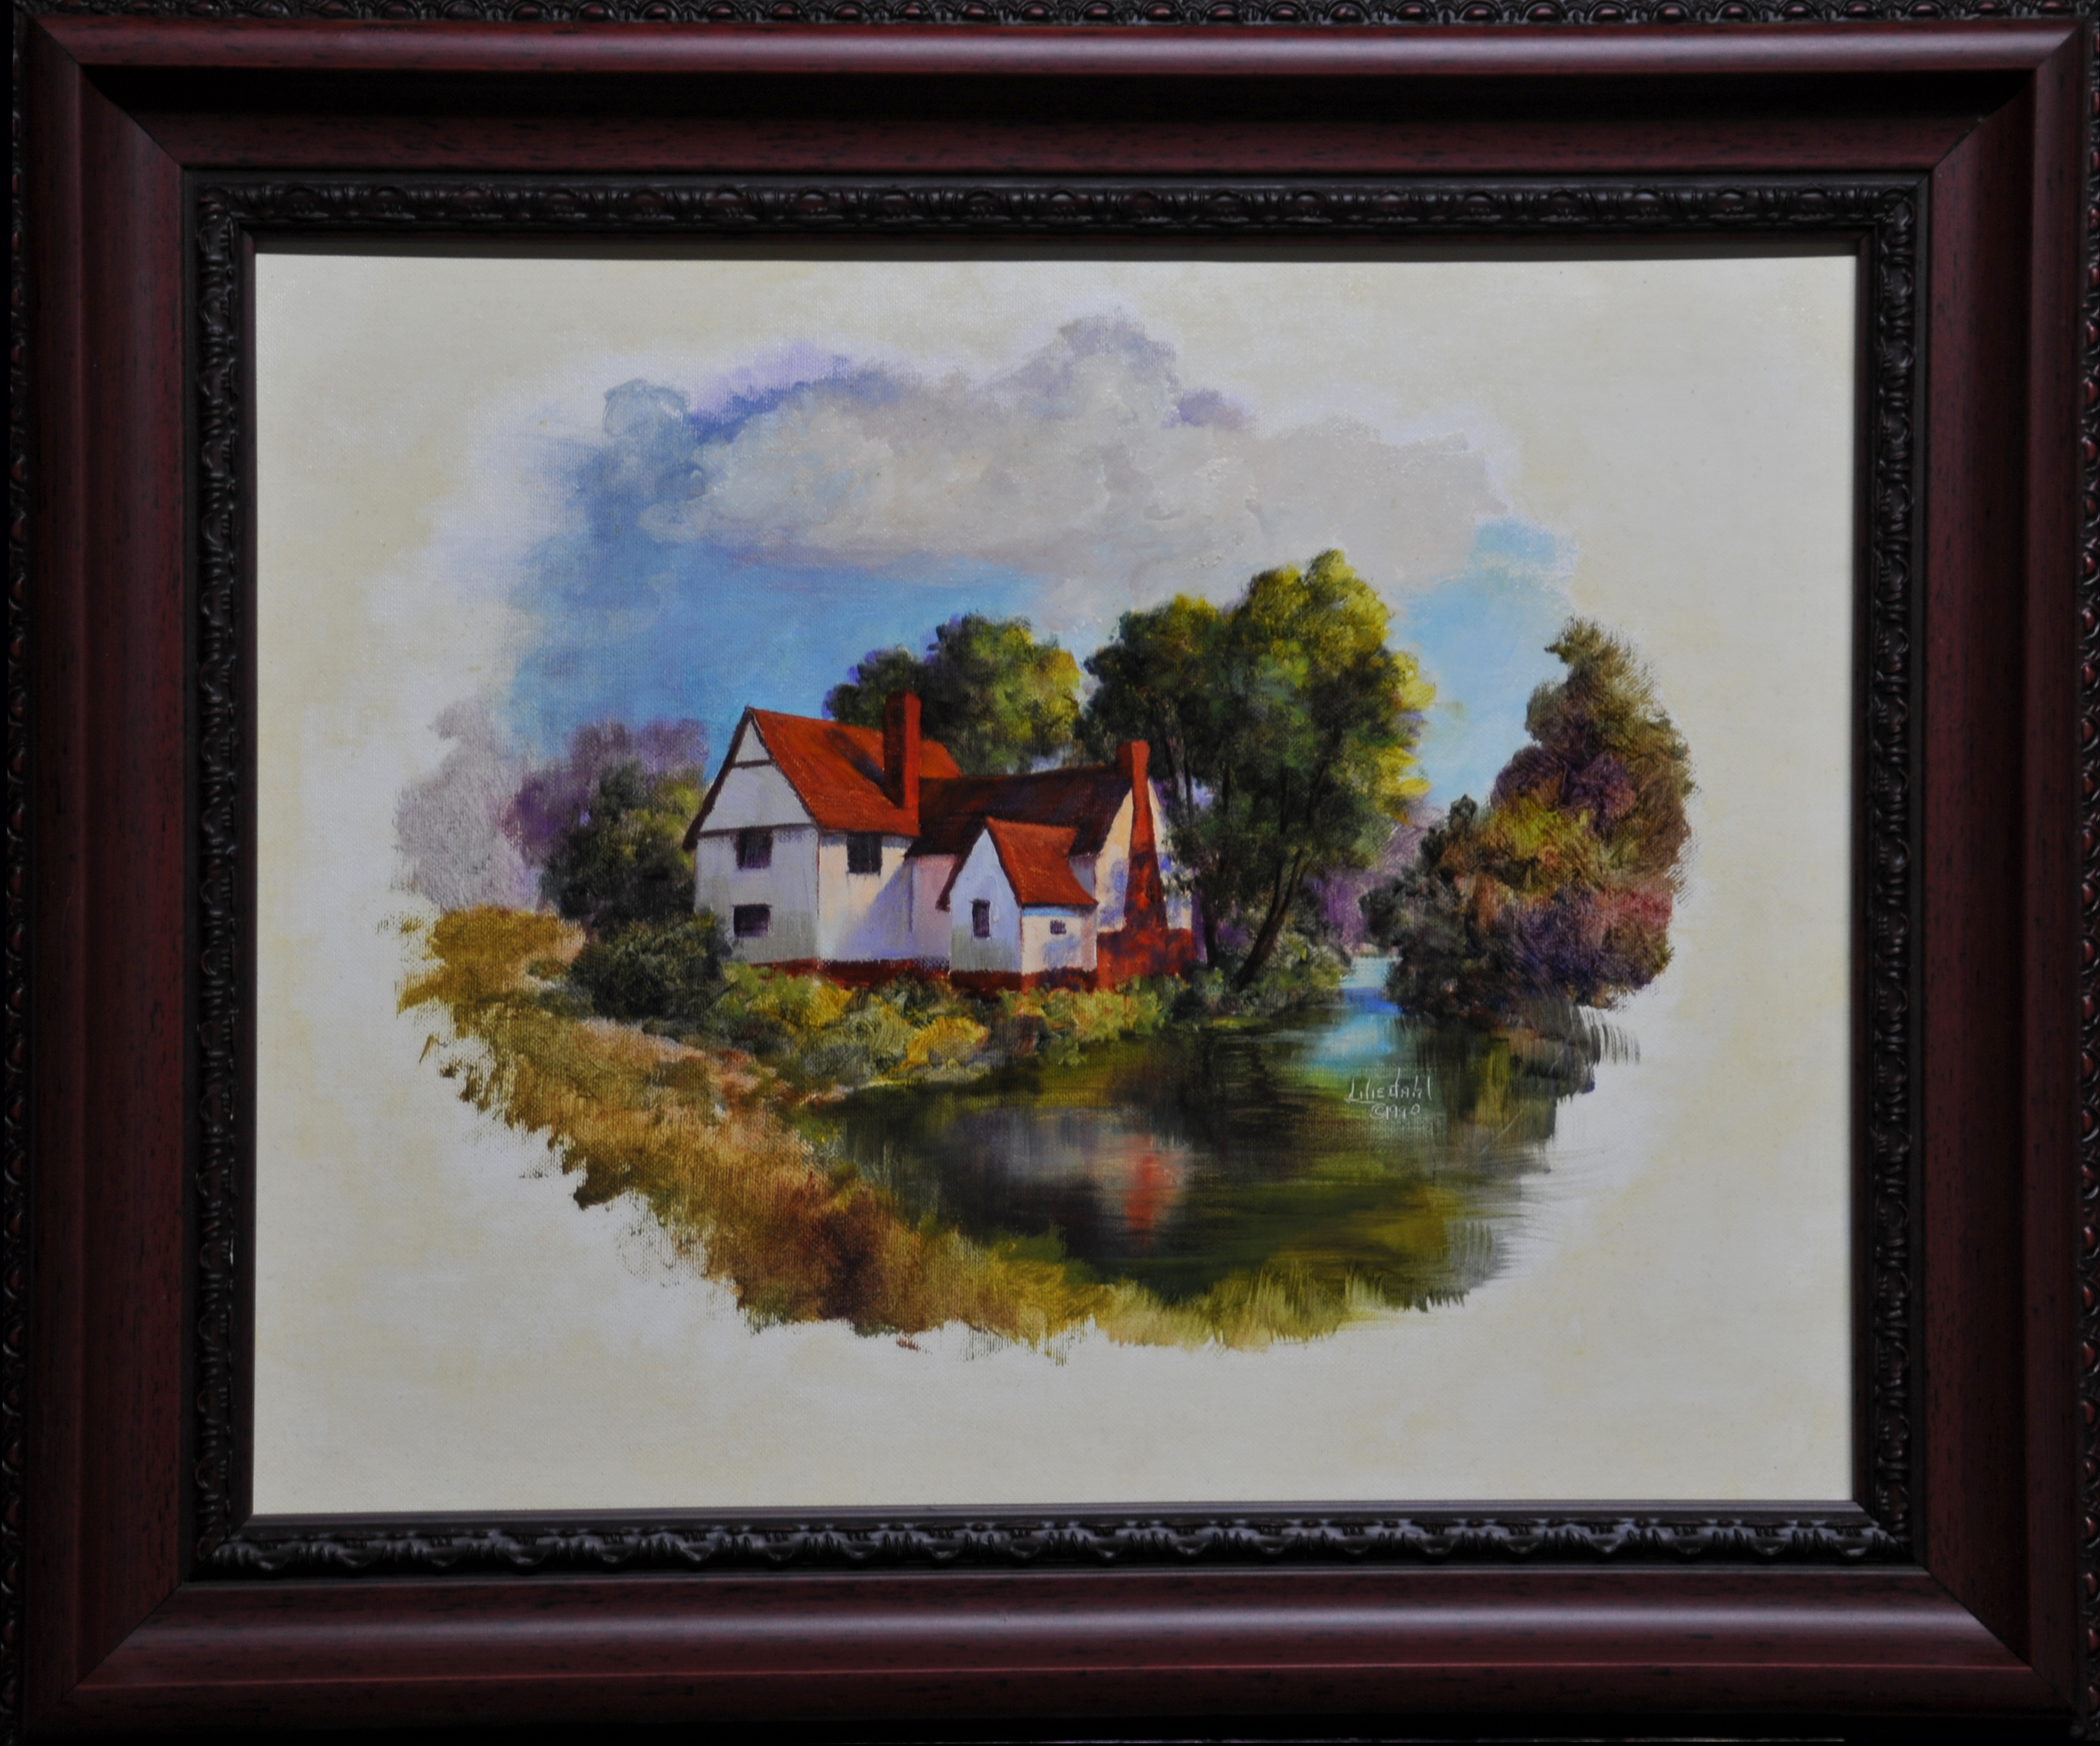 Willie lott s cottage framed igaqcr